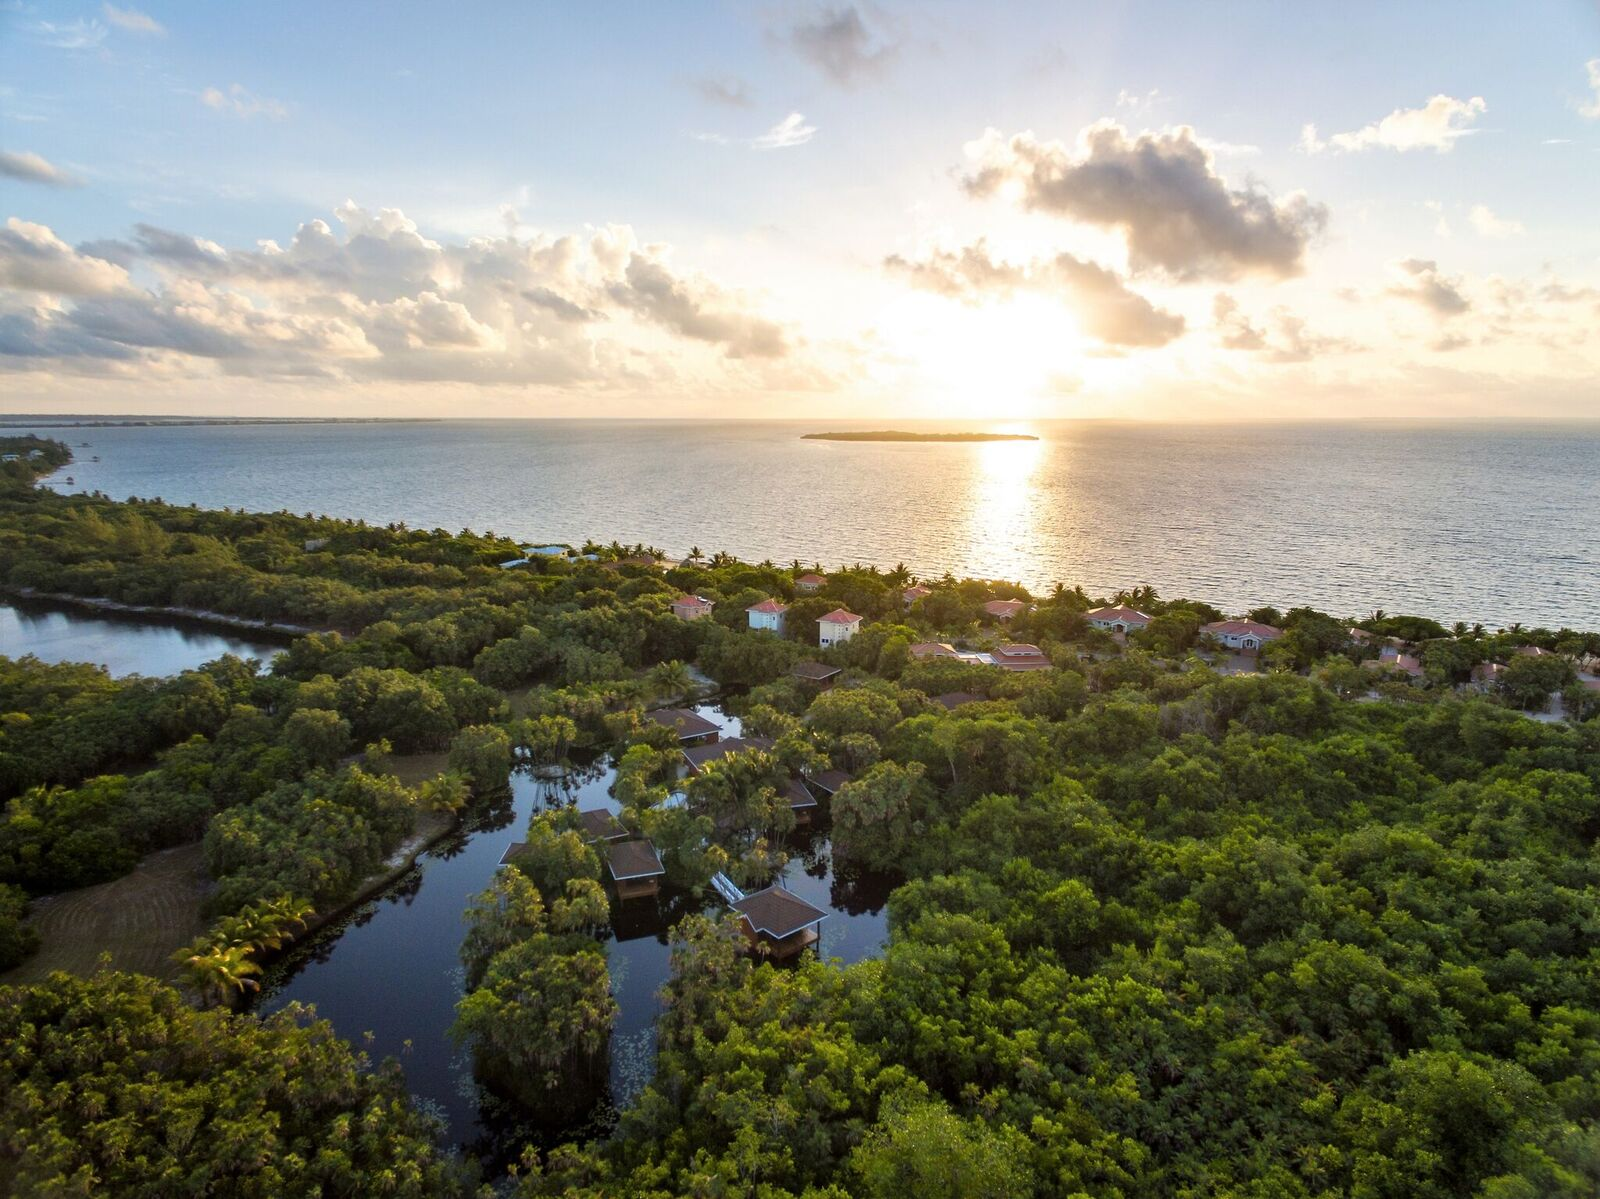 Spring Retreat to Belize - April 29 - May 4, 2019